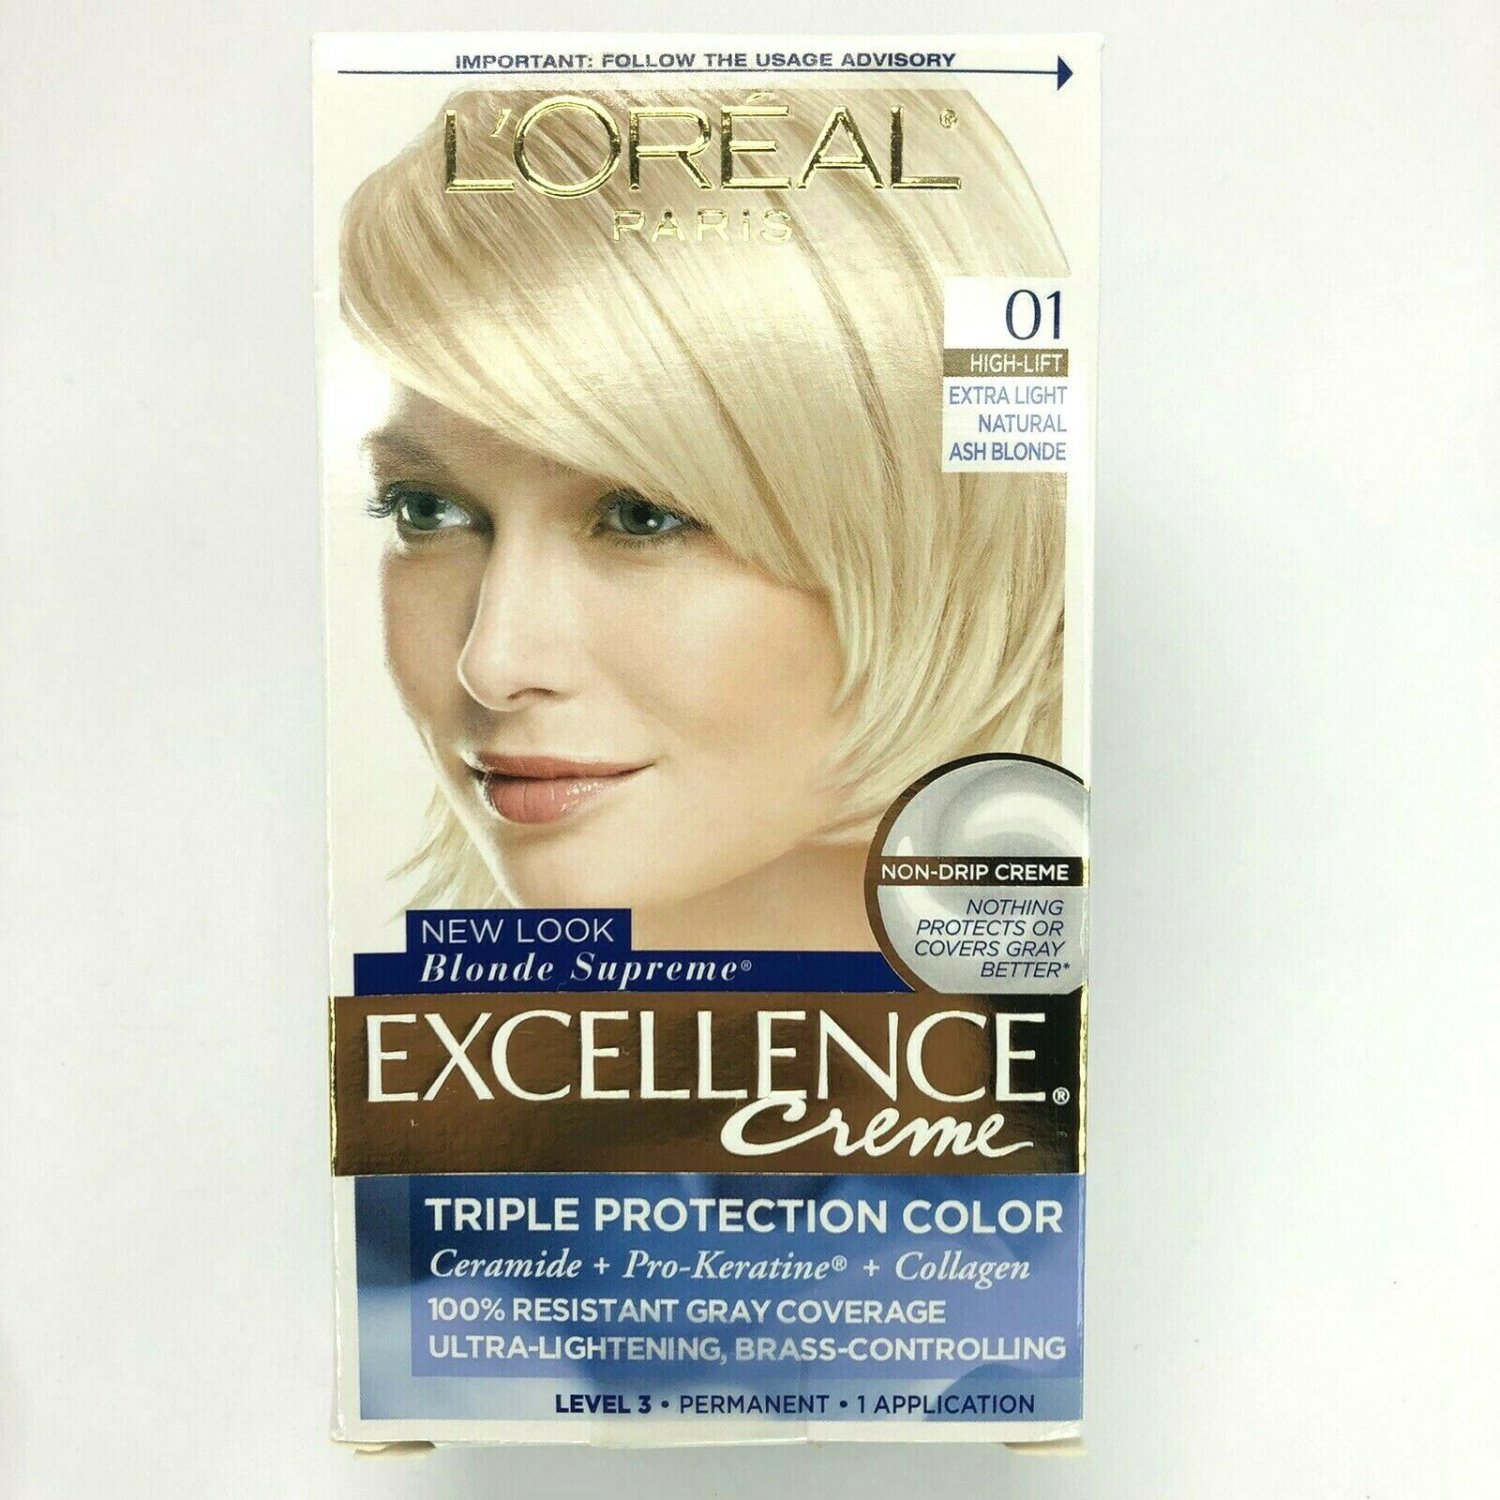 2X LOREAL Excellence Creme Color, 01 Extra Light Natural Ash Blonde